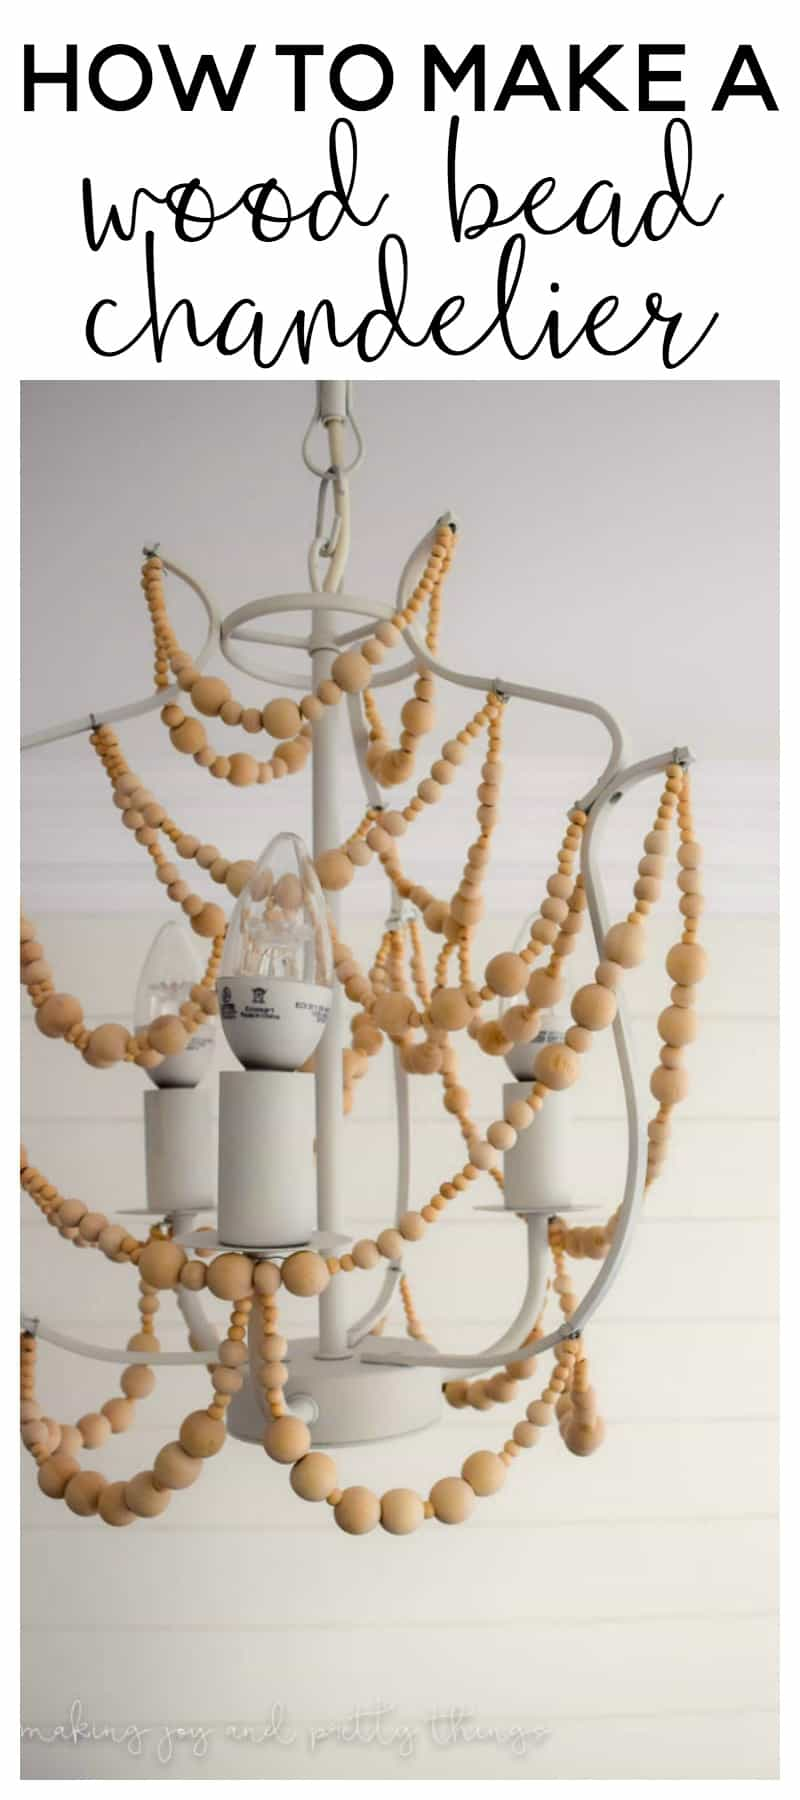 easy diy to make a wood bead chandelier the perfect diy craft to add farmhouse - Wood Bead Chandelier